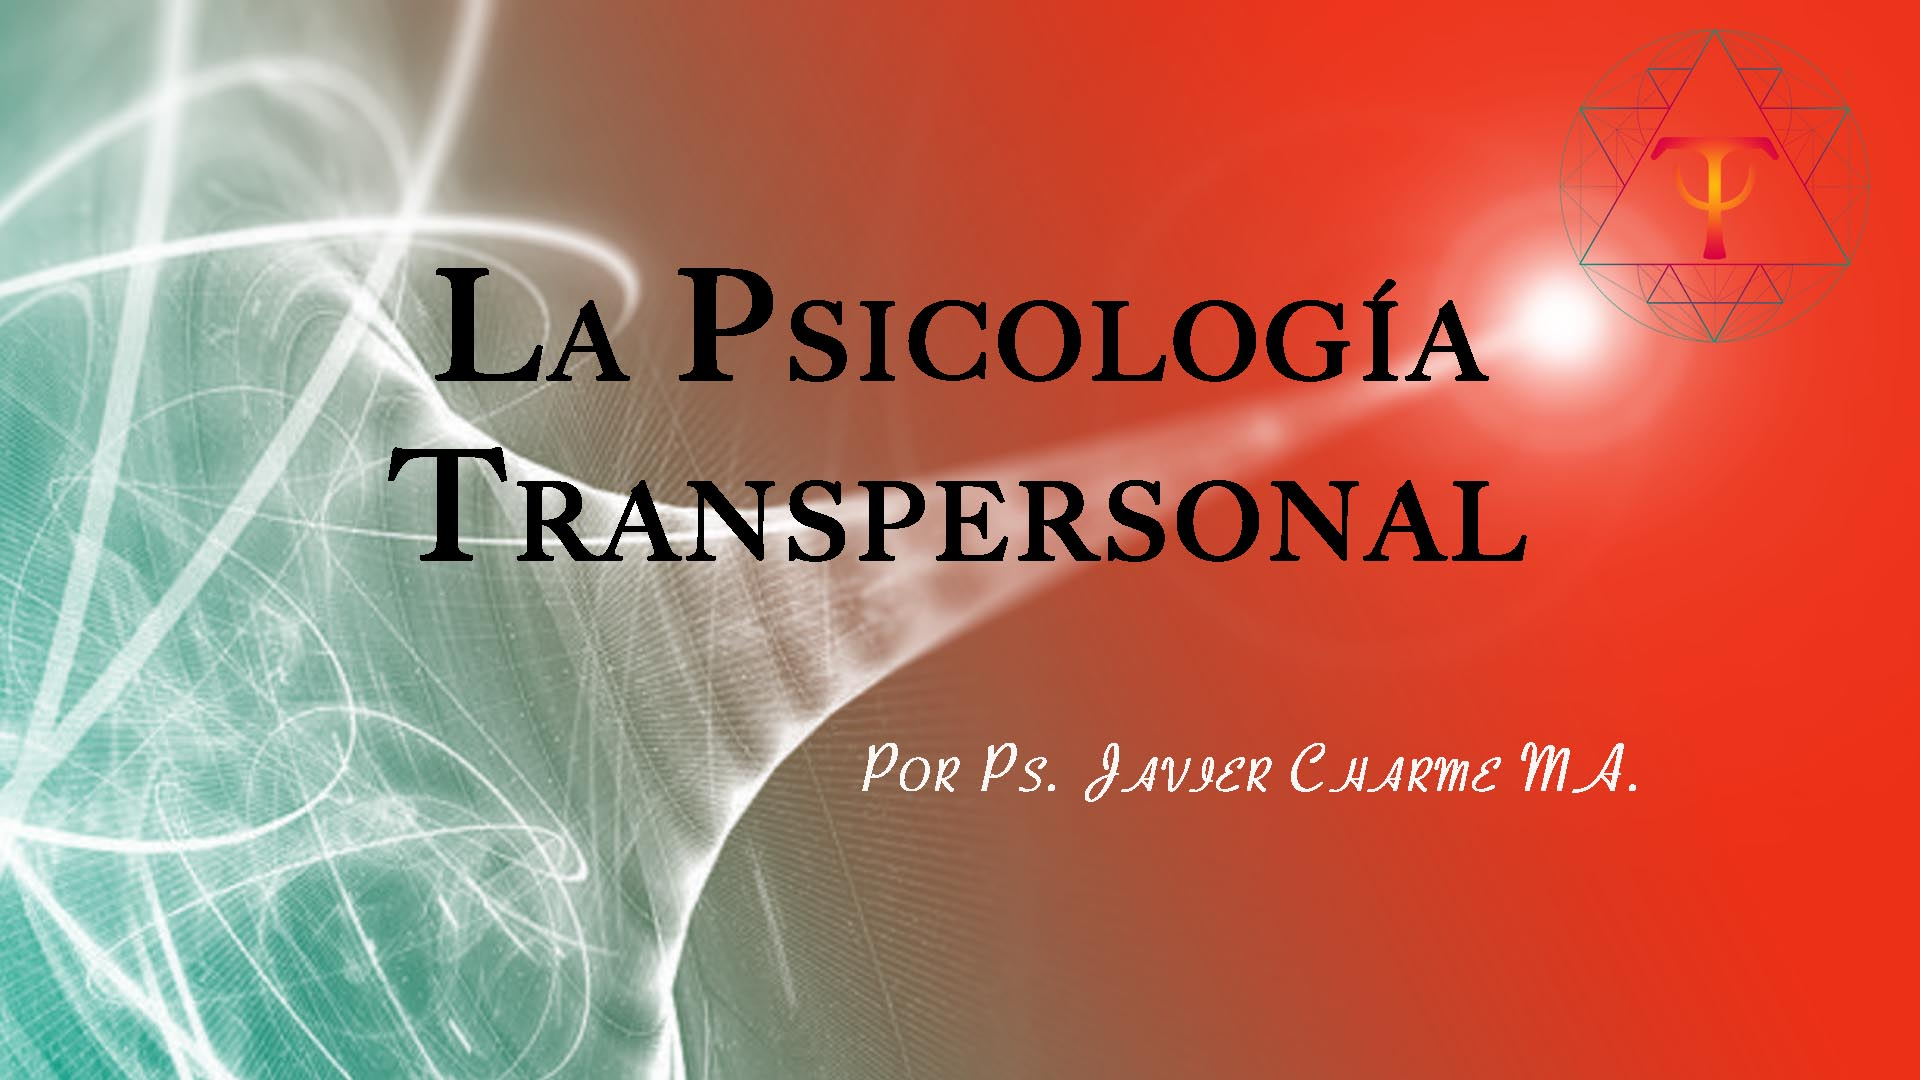 Ps. Transpersonal